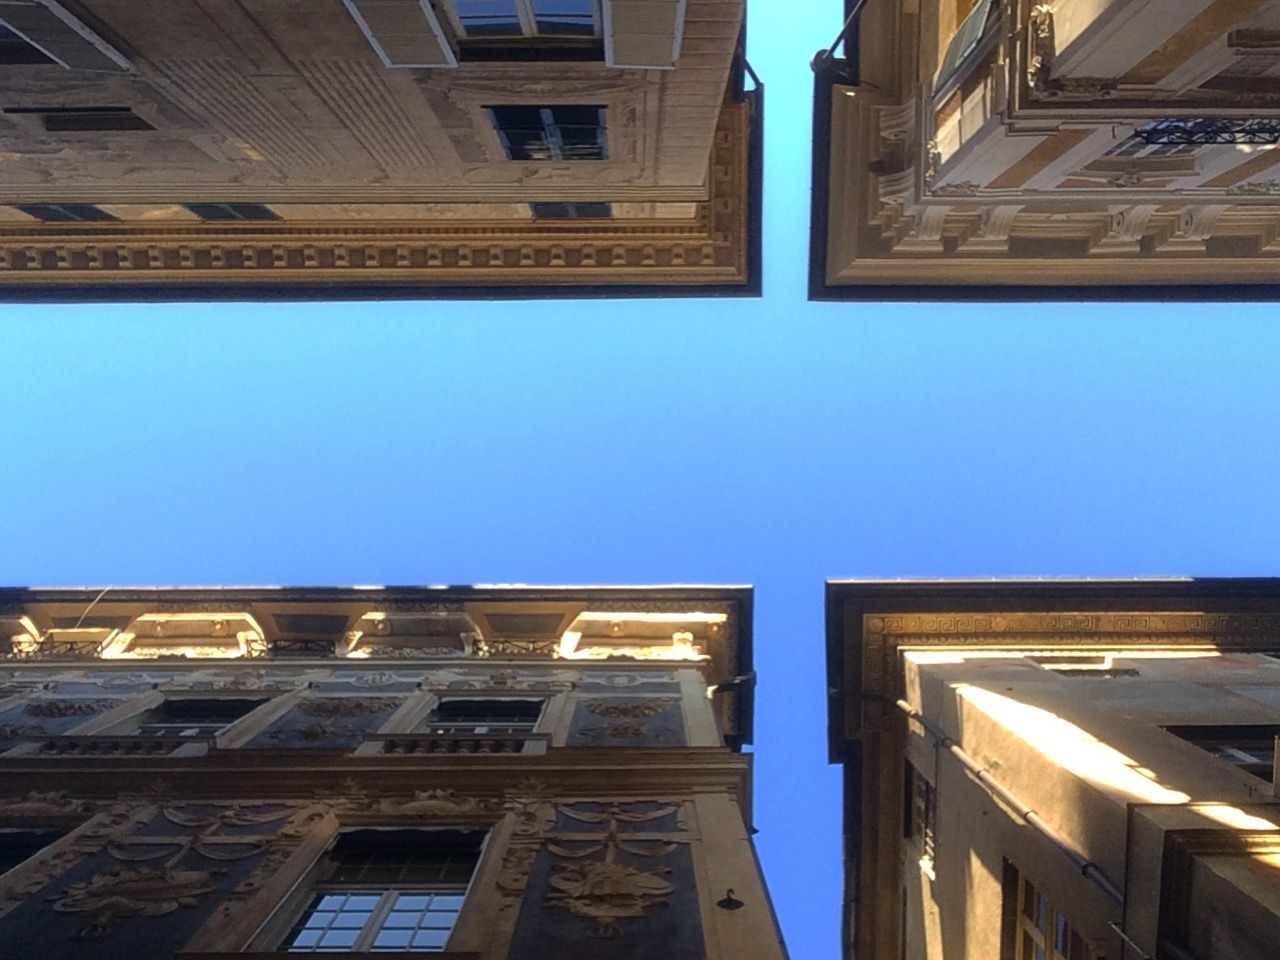 shoots from camera roll of about a year ago Architecture Blue Building Exterior Built Structure City Clear Sky Day Illuminated Low Angle View No People Outdoors Sky Window